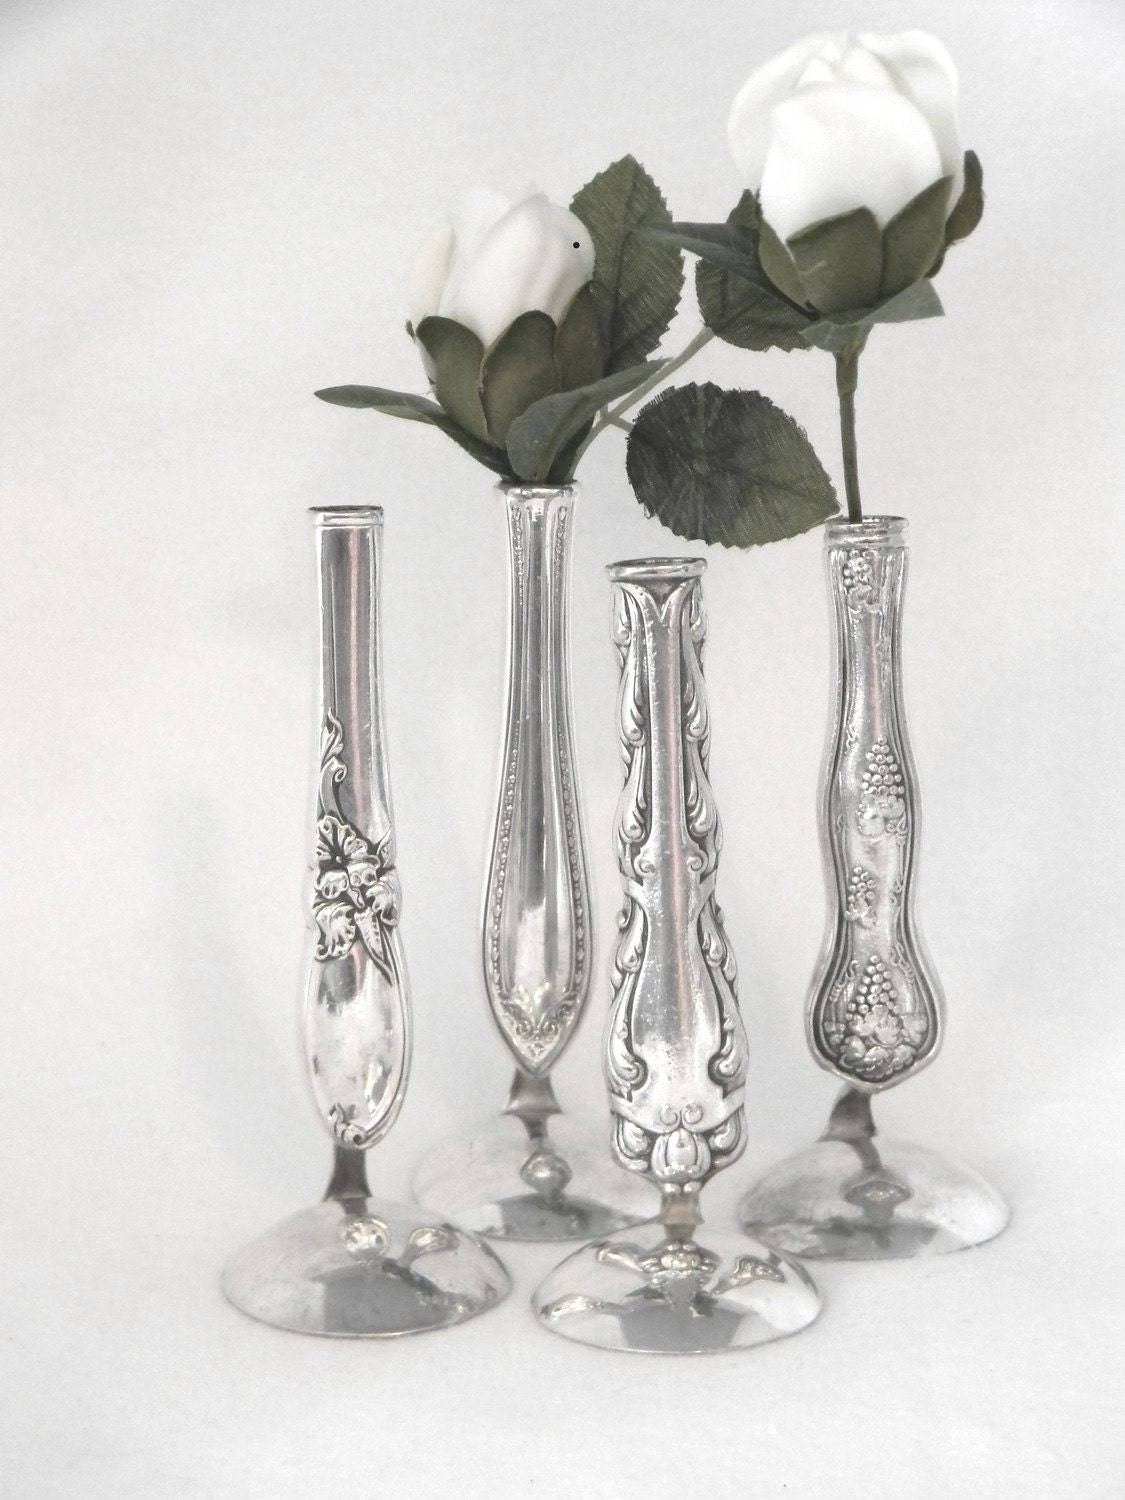 special order for erica 12 vintage silver vases bud vases. Black Bedroom Furniture Sets. Home Design Ideas